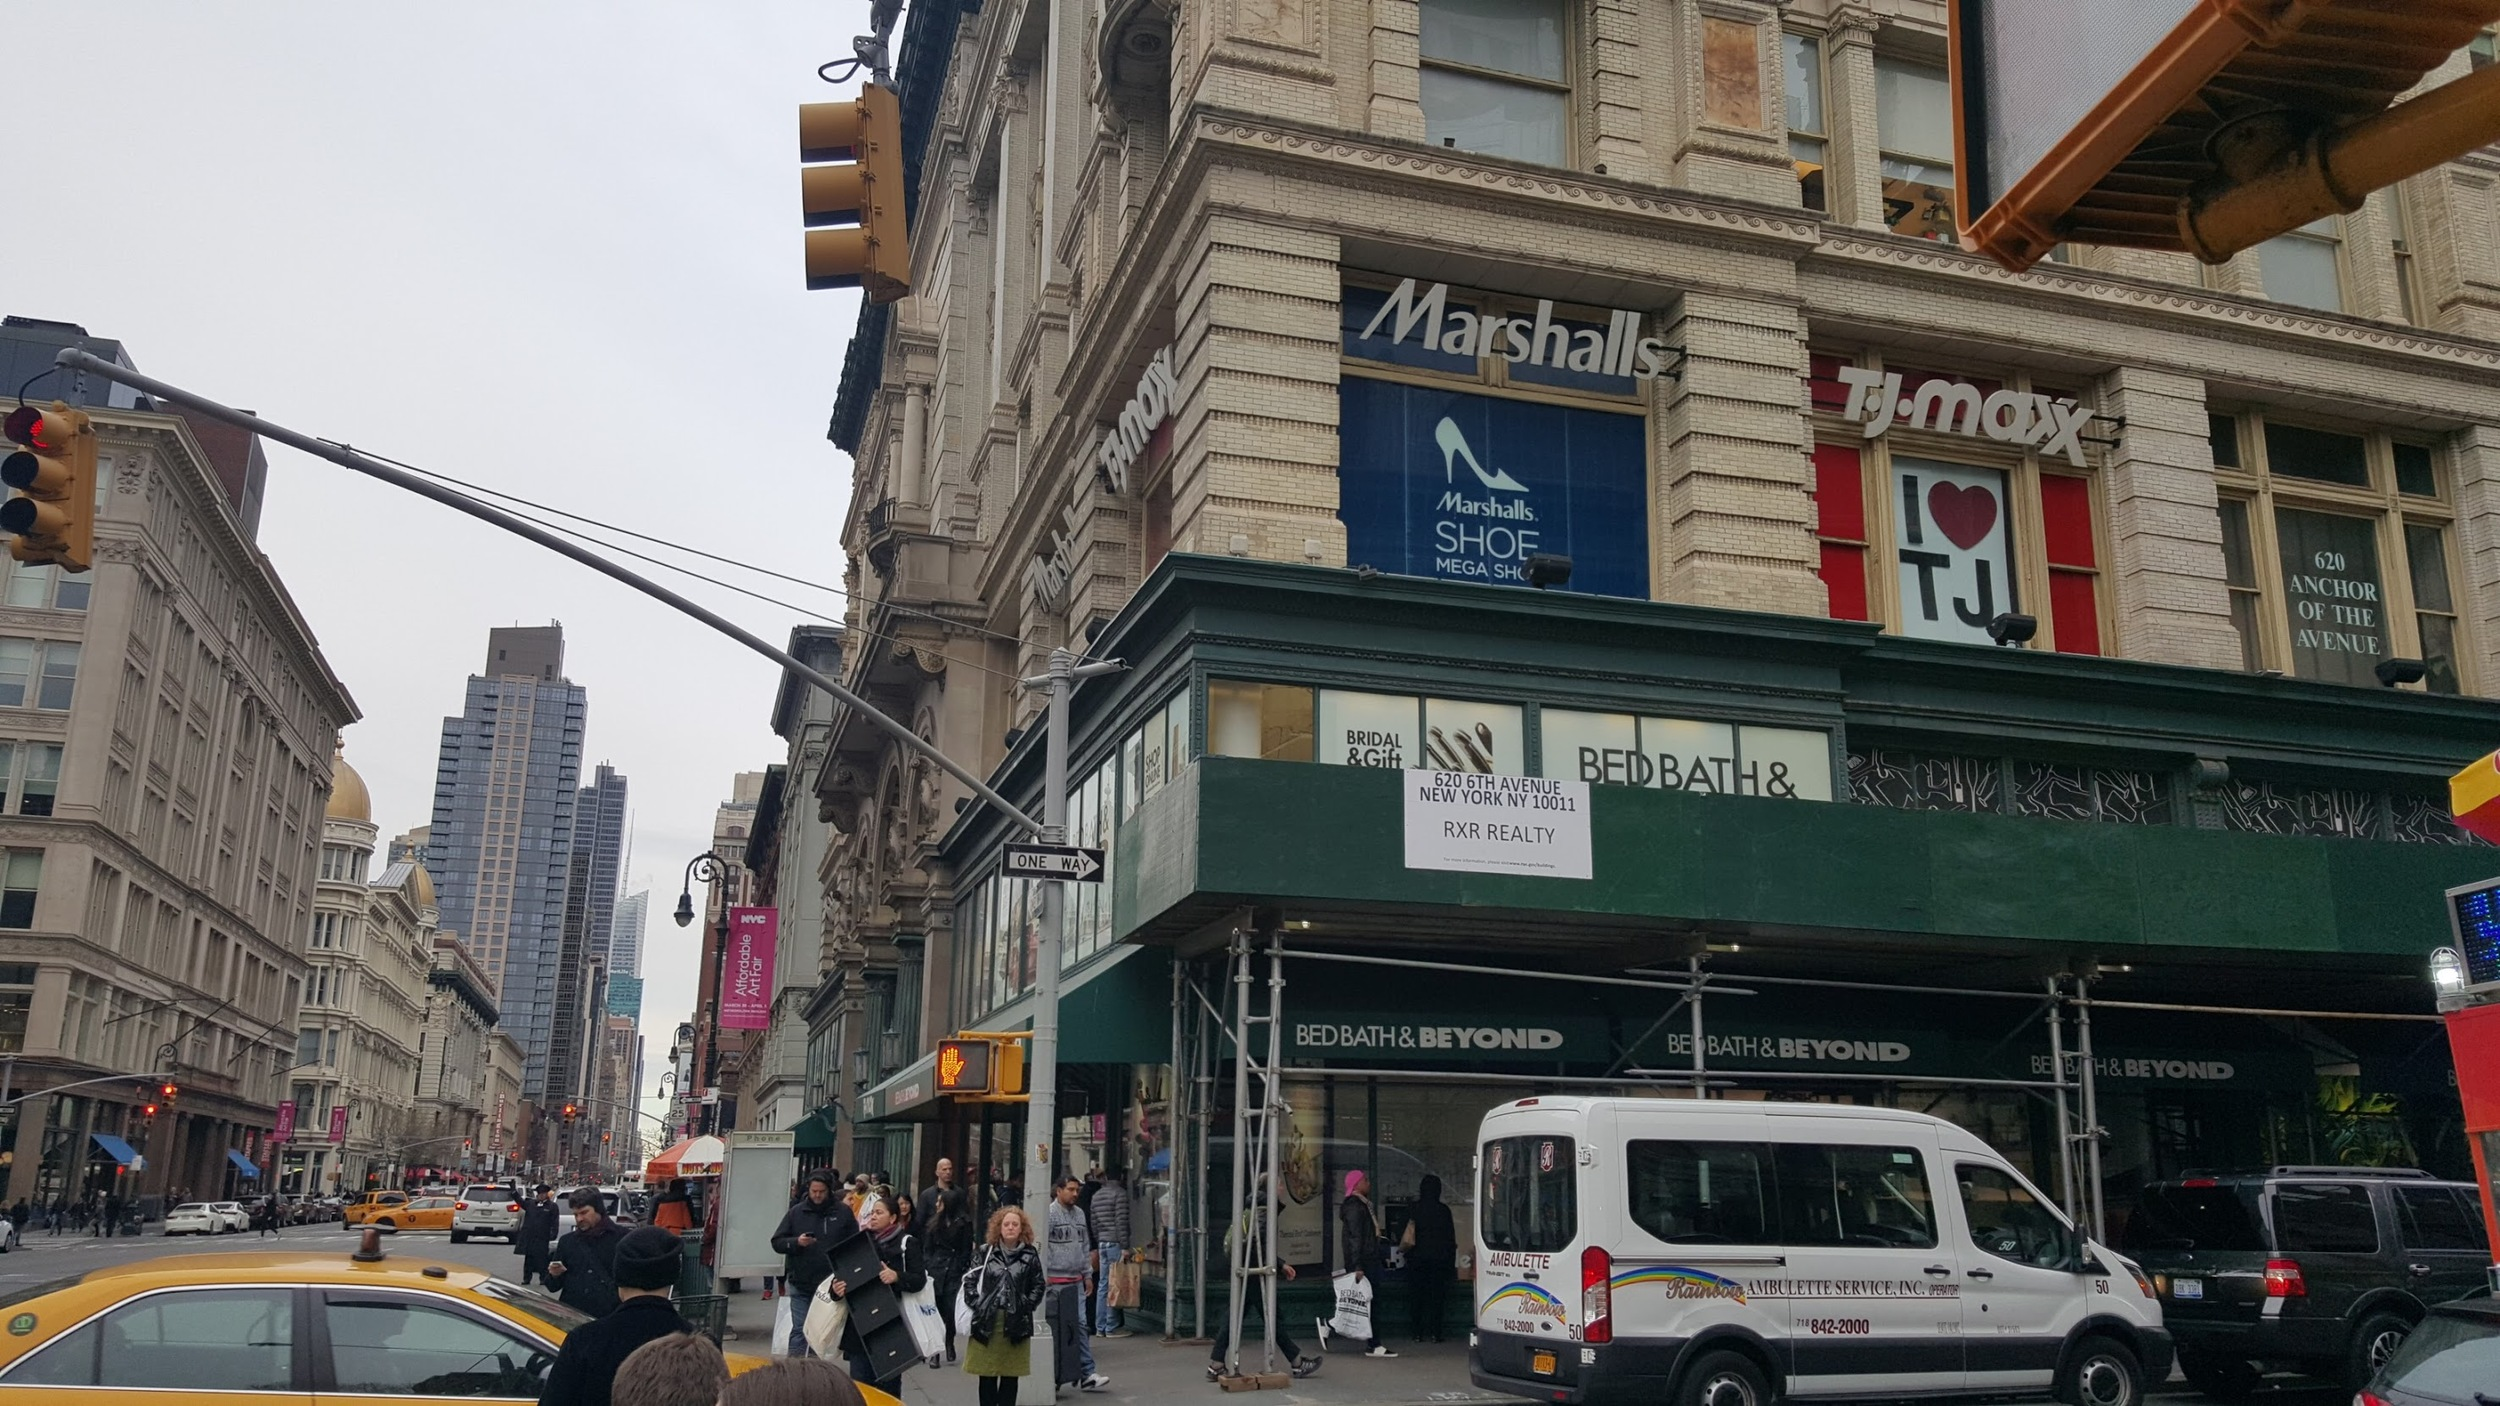 My wife loves  6th Avenue - Avenue of the Americas.  This building contains a World Market, TJ Maxx, Marshalls, and Bed, Bath & Beyond.  The Bed, Bath & Beyond here is huge - it might as well be Walmart!